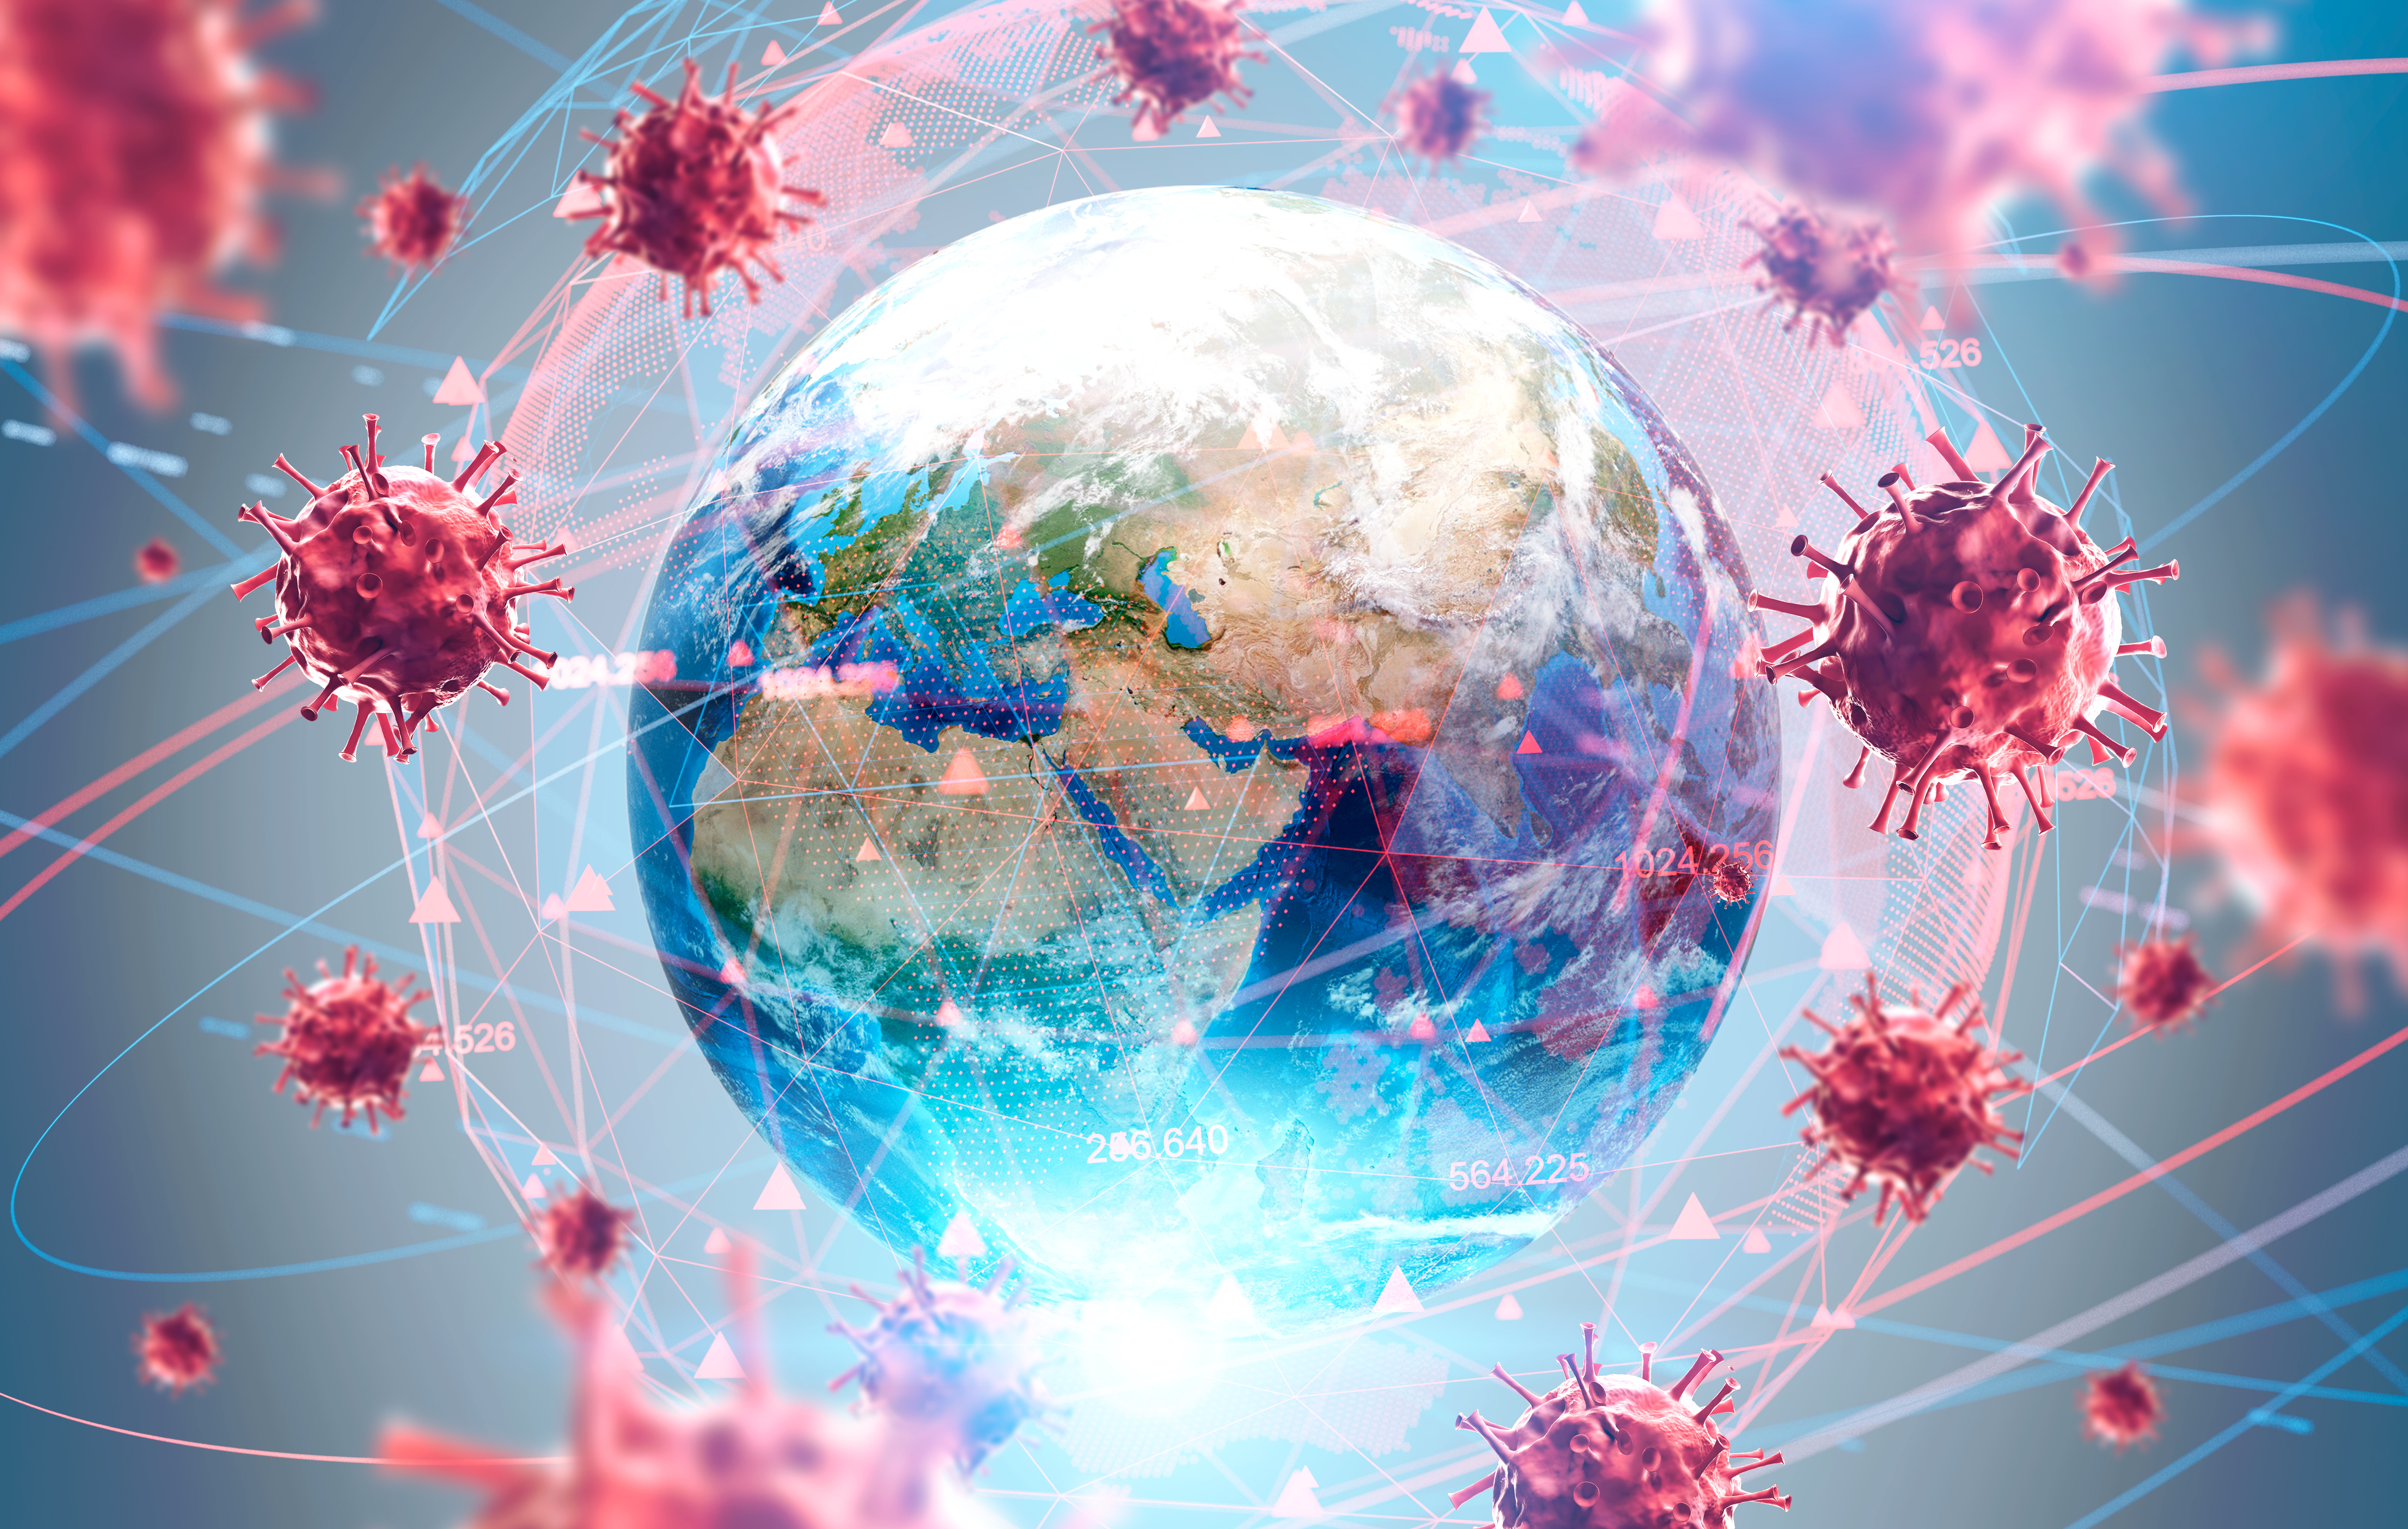 Coronavirus sinks global growth forecasts for 2020